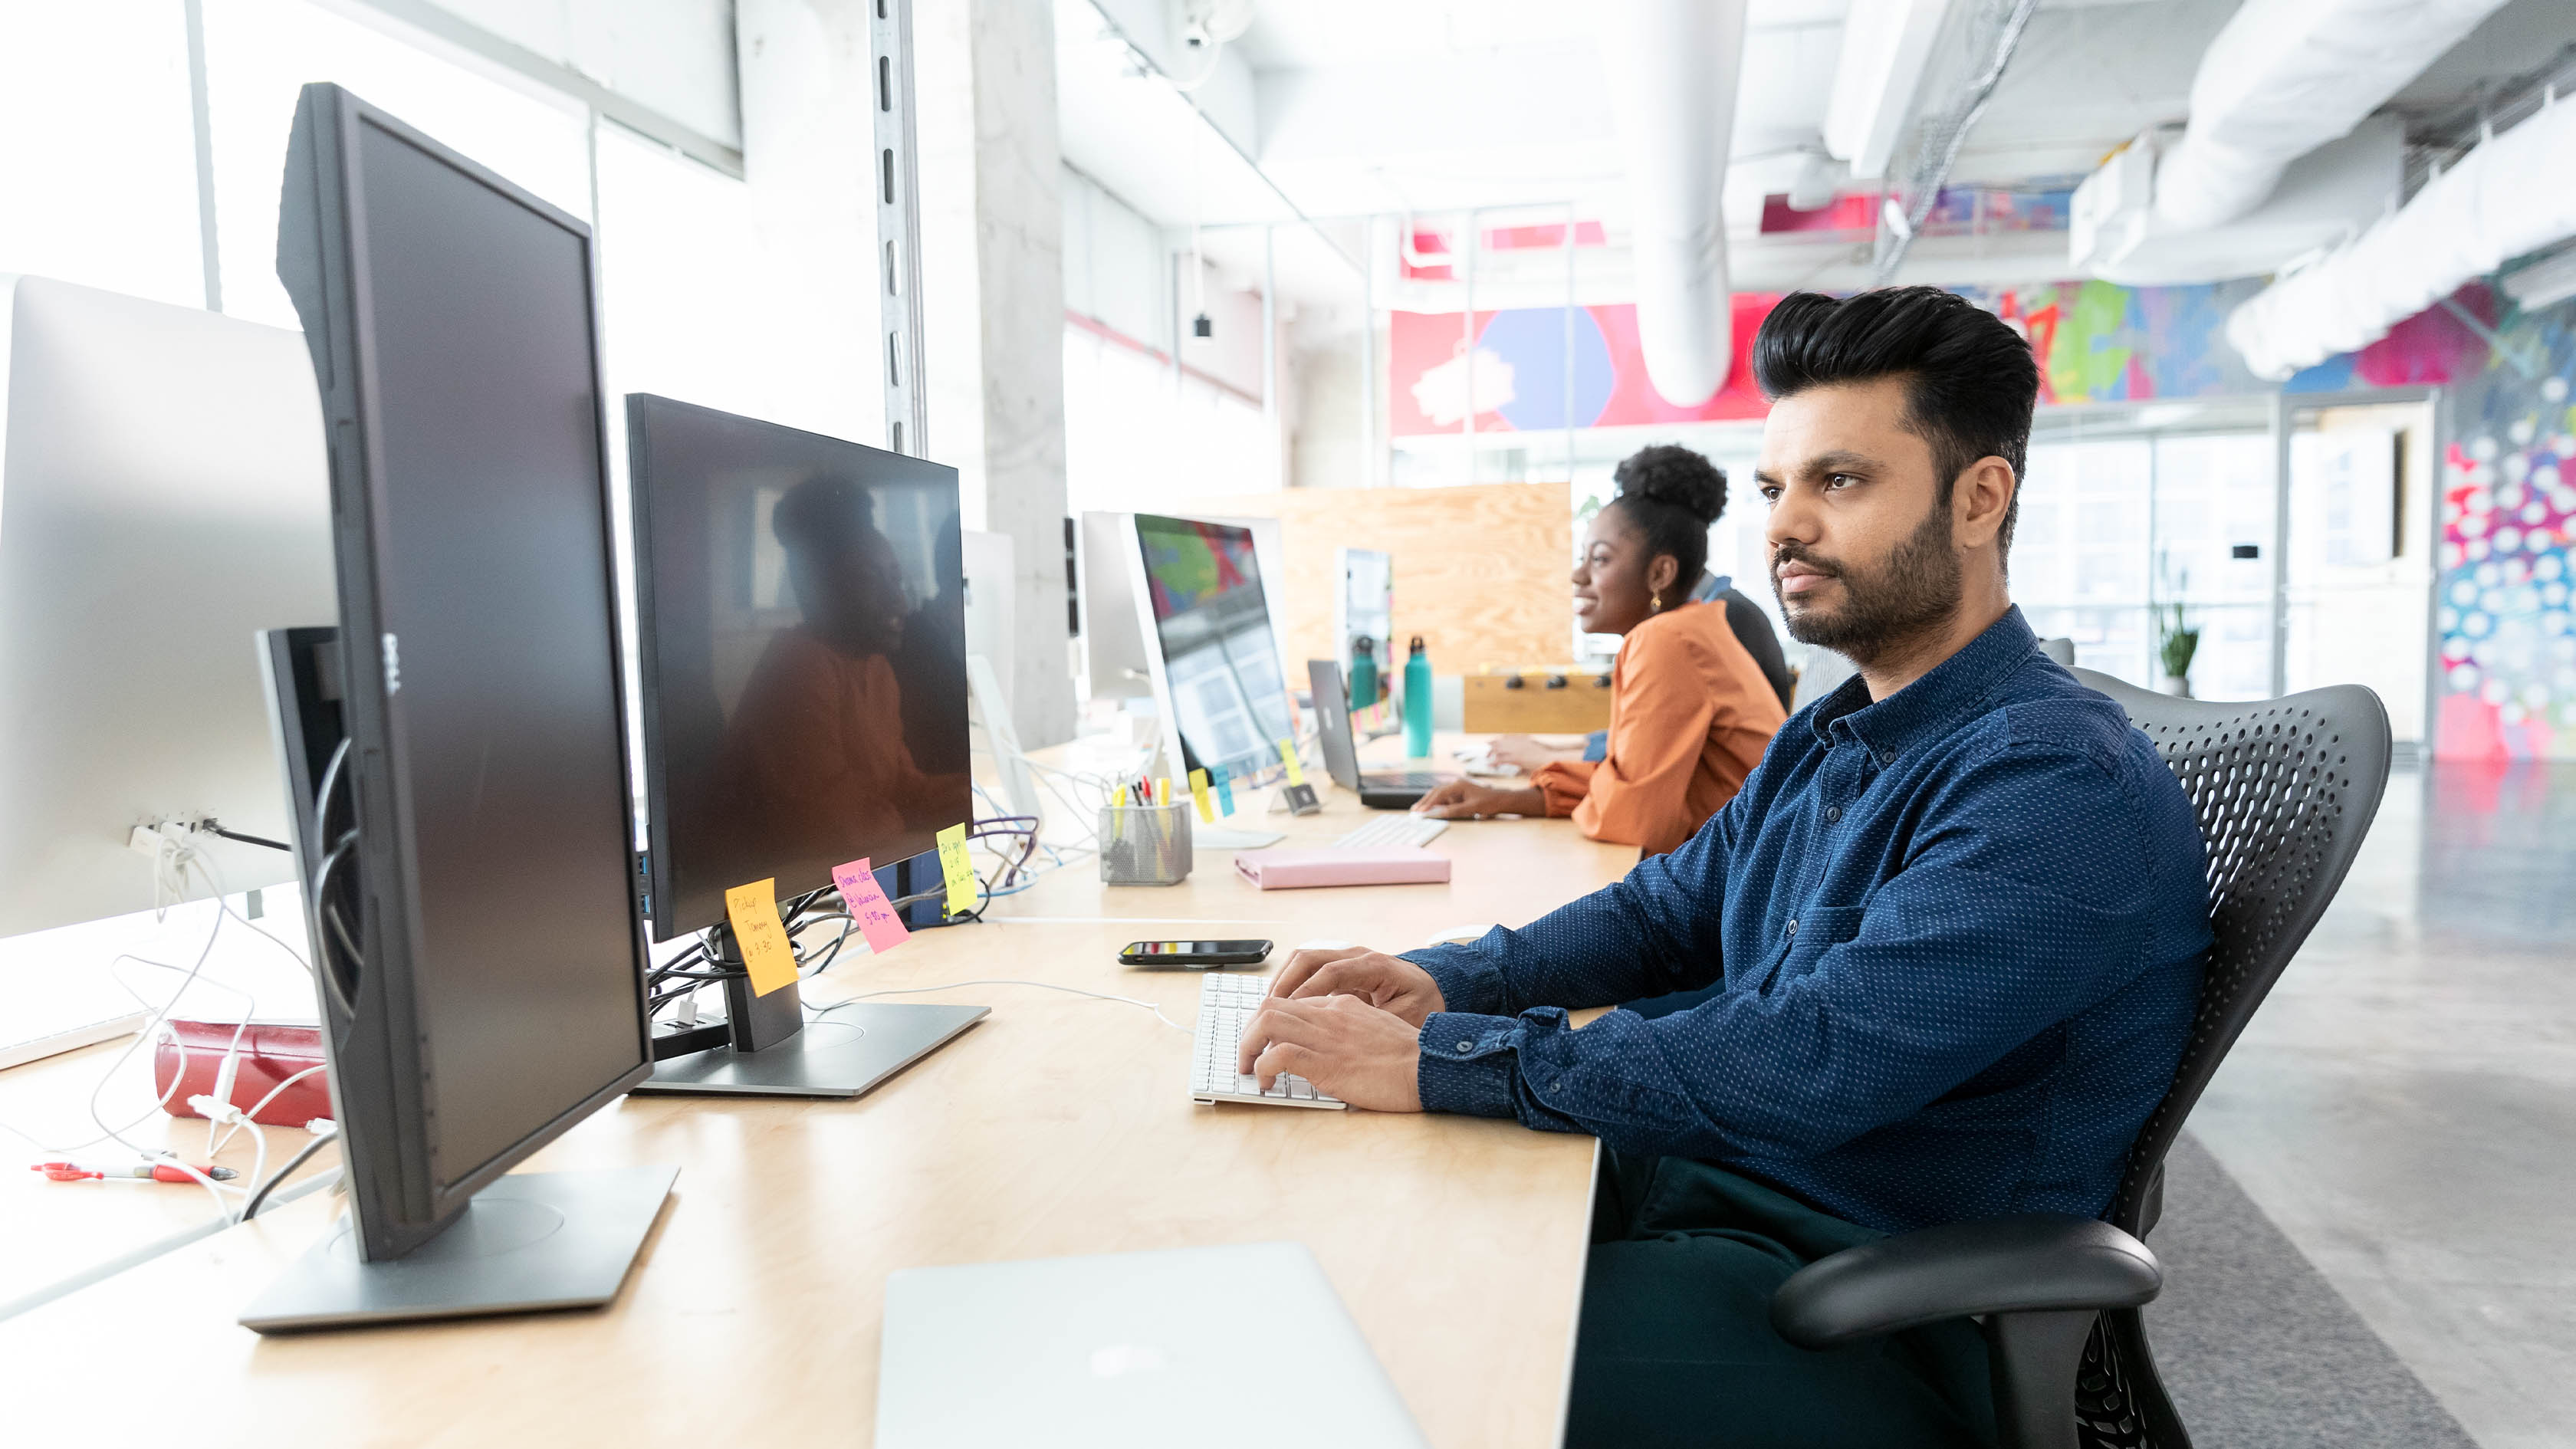 Workers looking at computers in bright office space